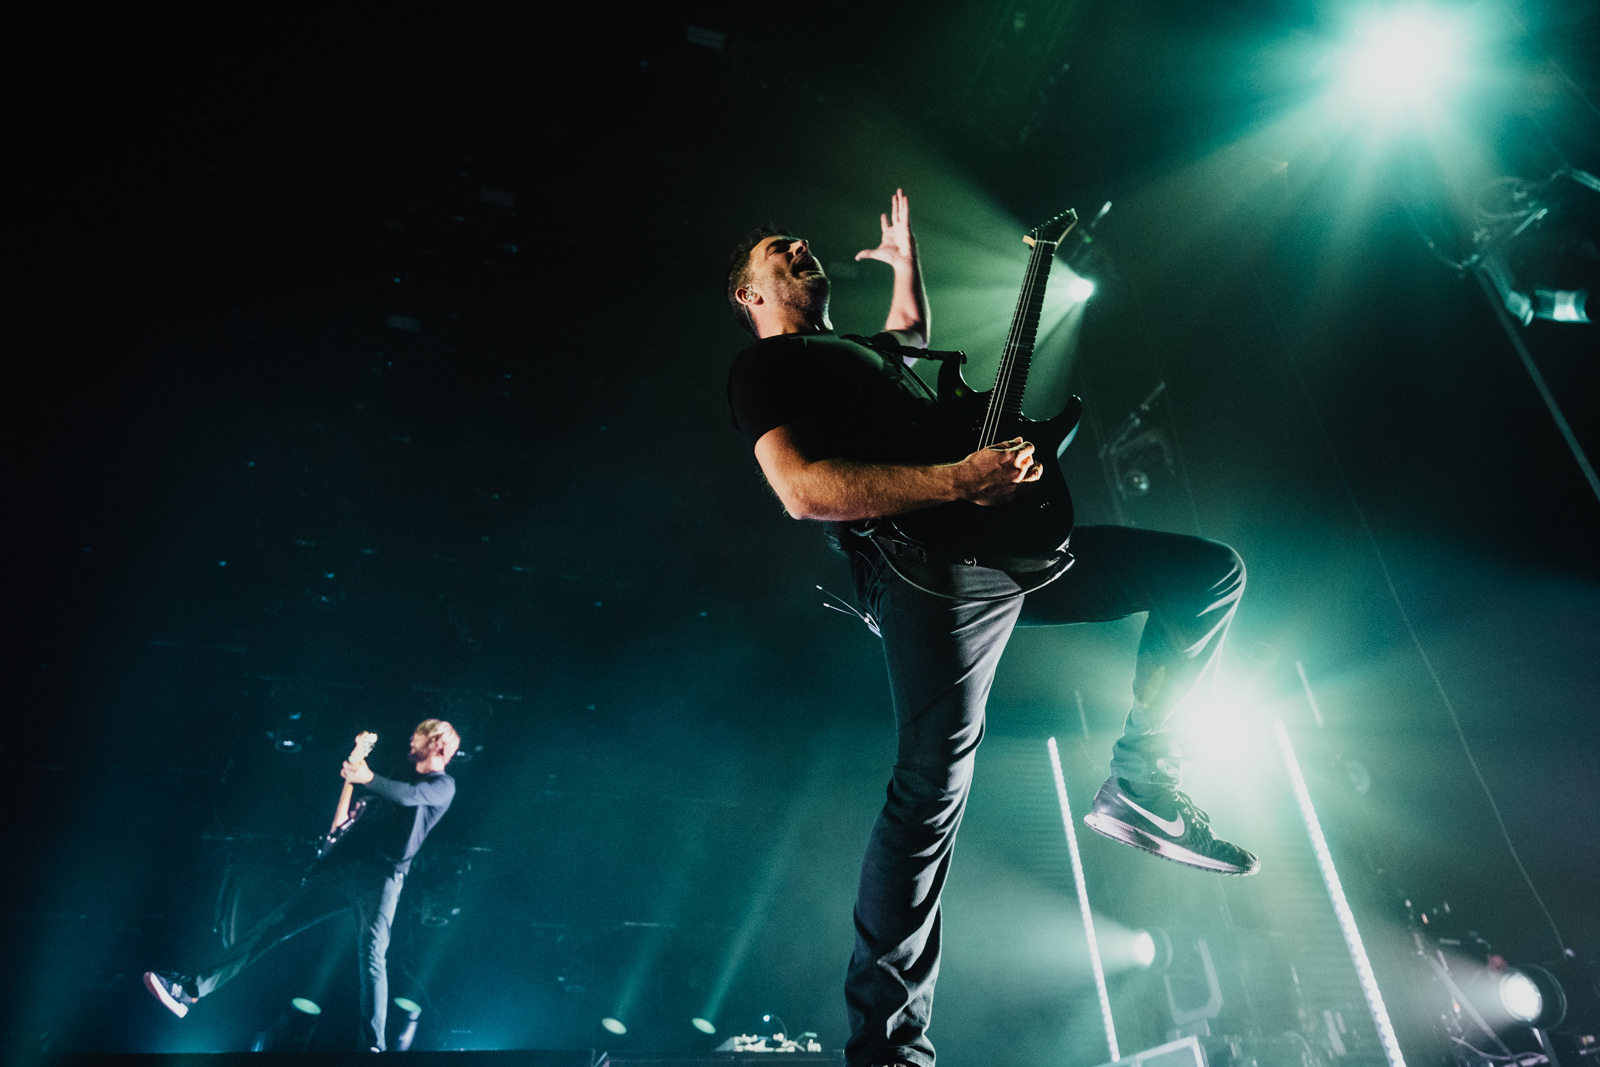 20190205_parkway drive_09